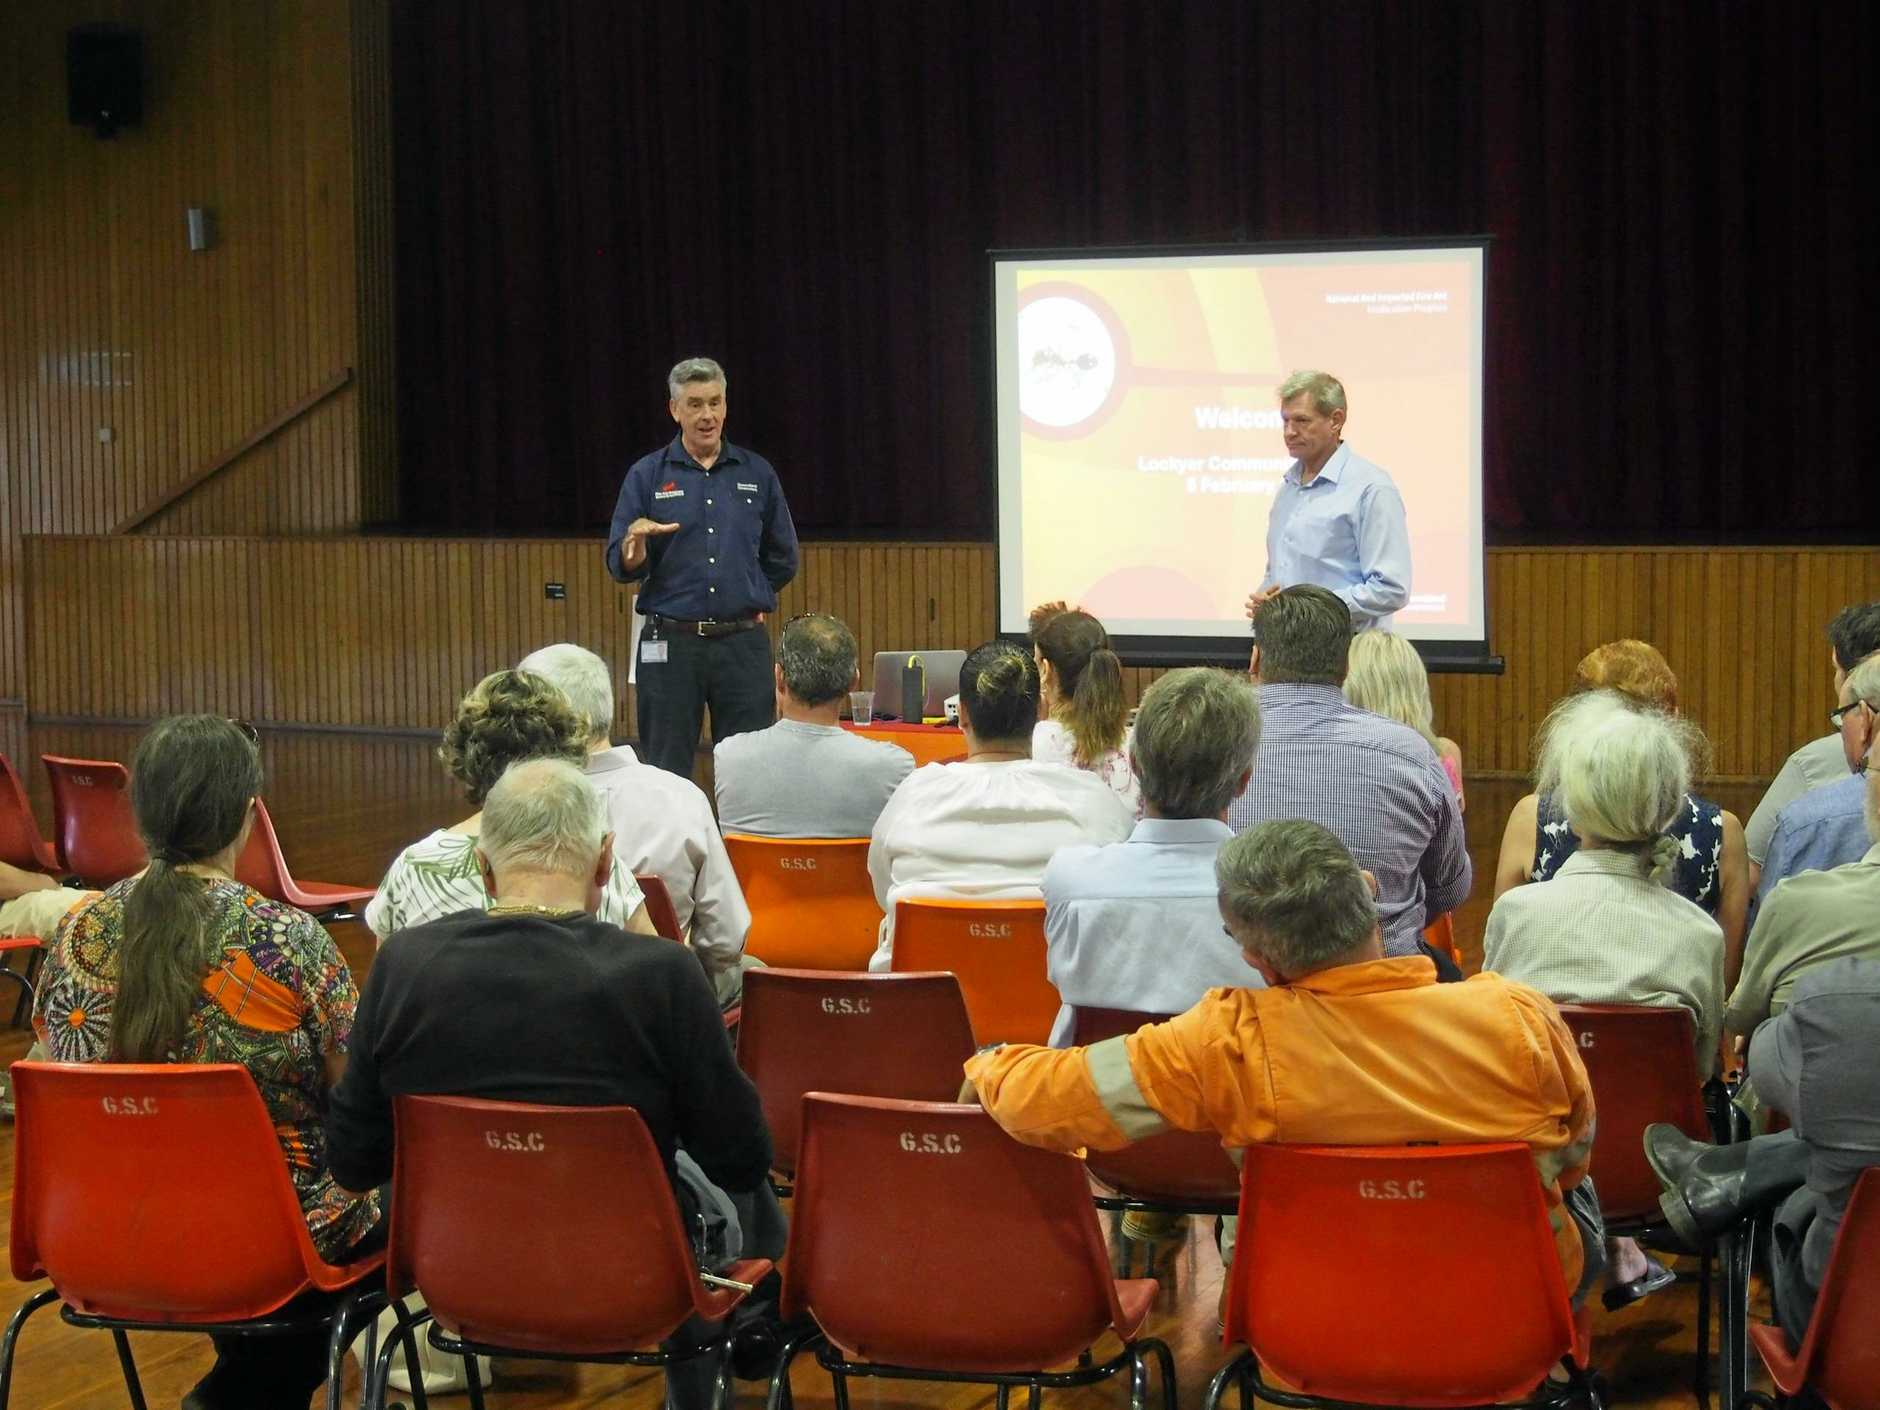 CONTROVERSIAL: Biosecurity Queensland representatives and Member for Lockyer Jim McDonald hosted a Fire Ant Eradication Program info session for the Lockyer Valley community in Gatton this week.